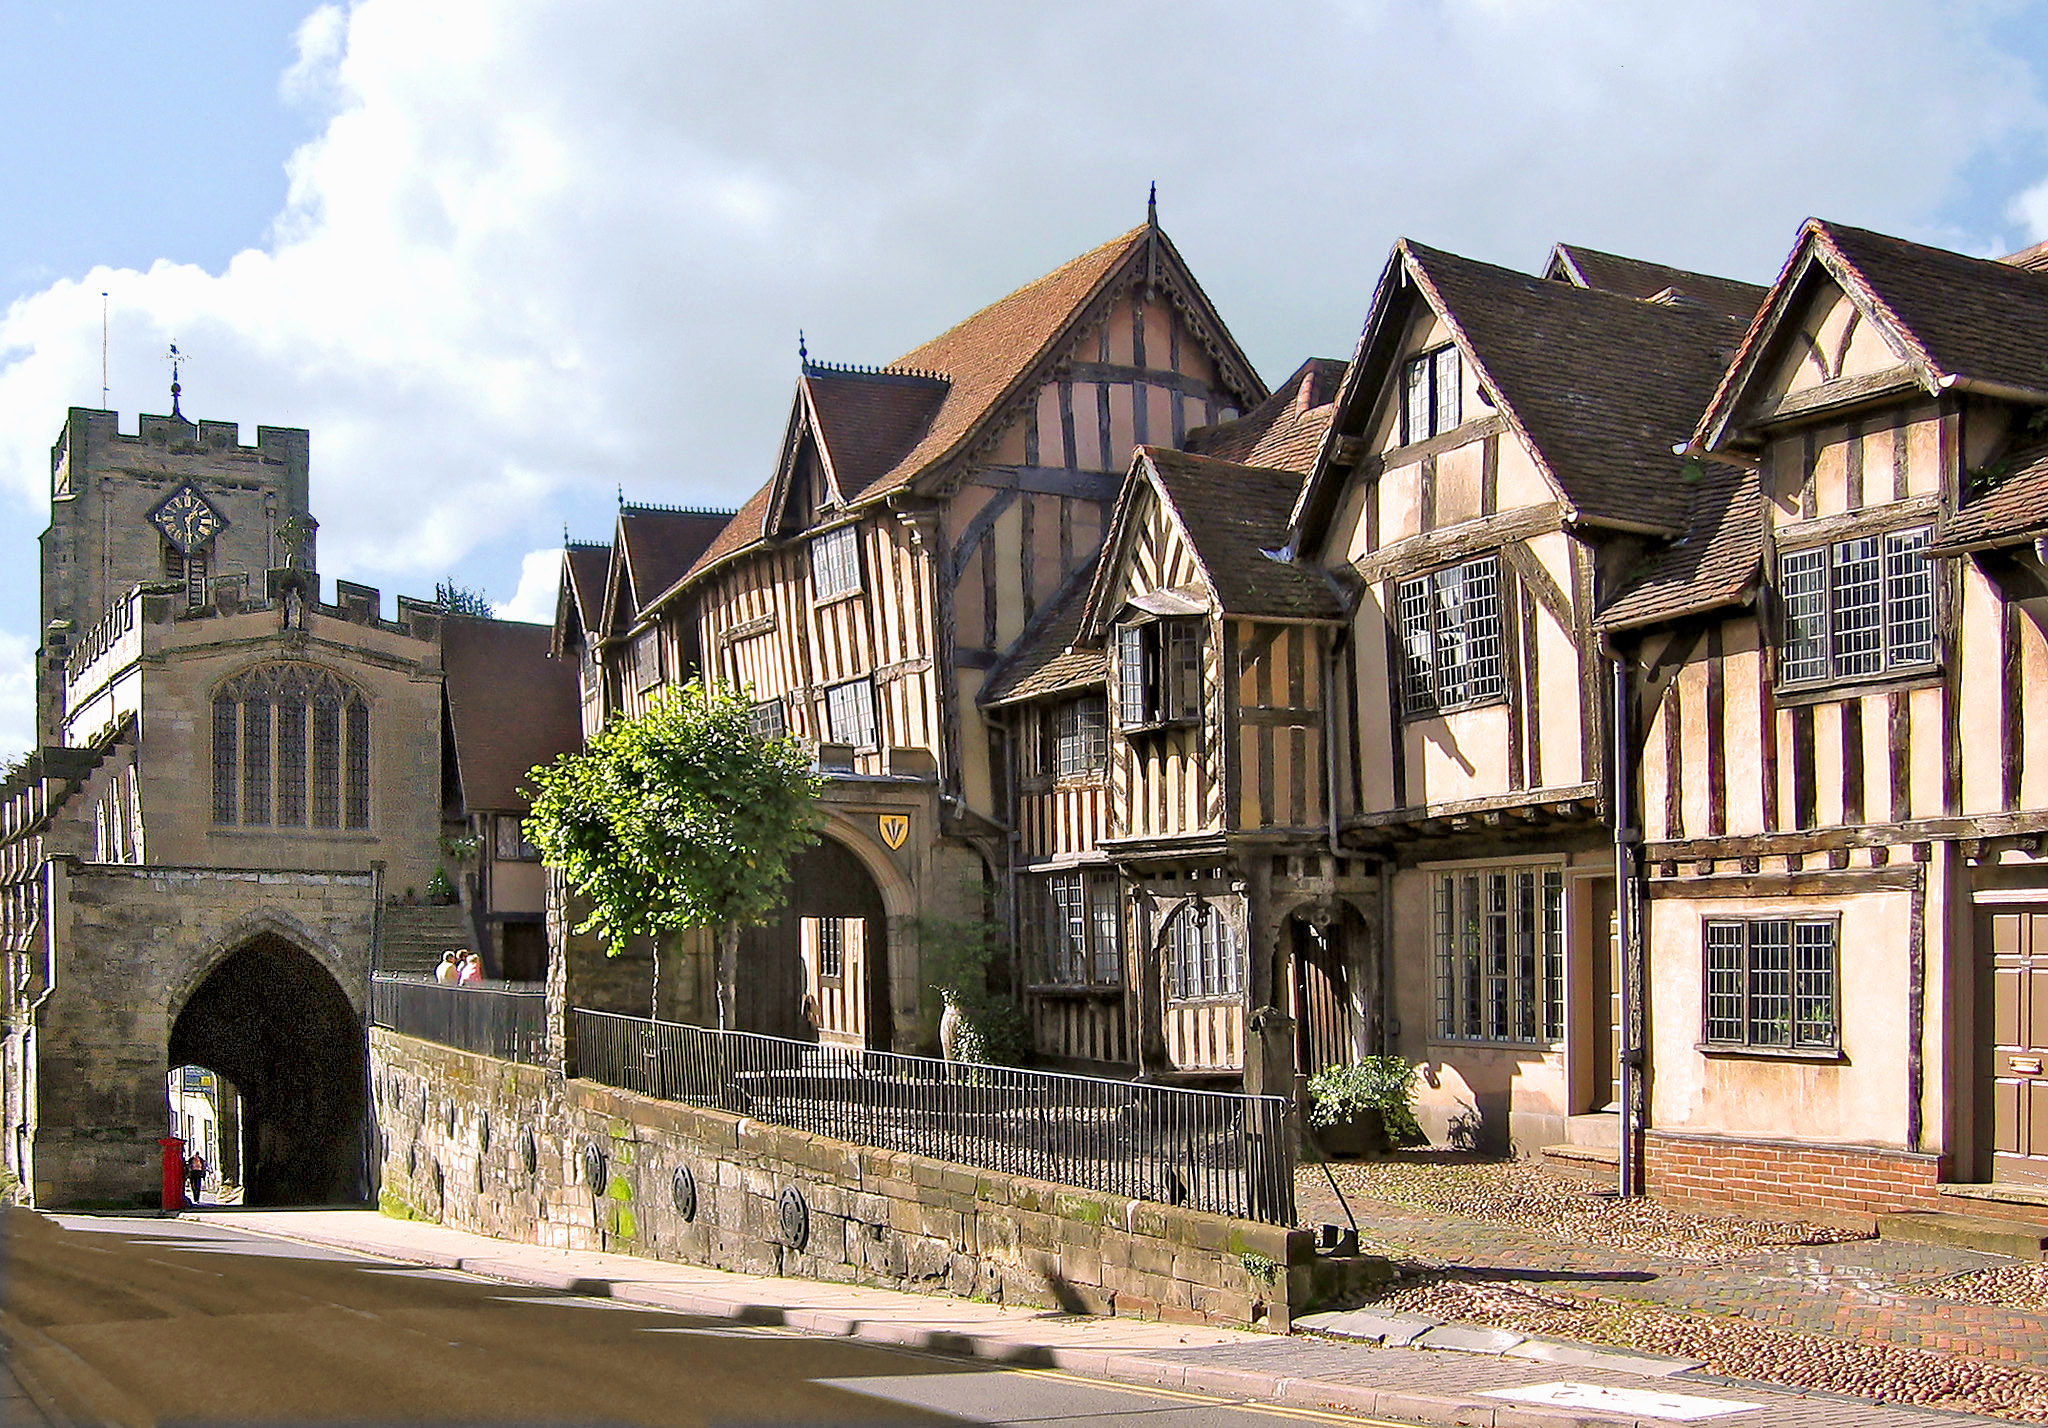 West Gate and Lord Leycester's Hospital, Warwick, Warwickshire by Andrew S Brown.jpg